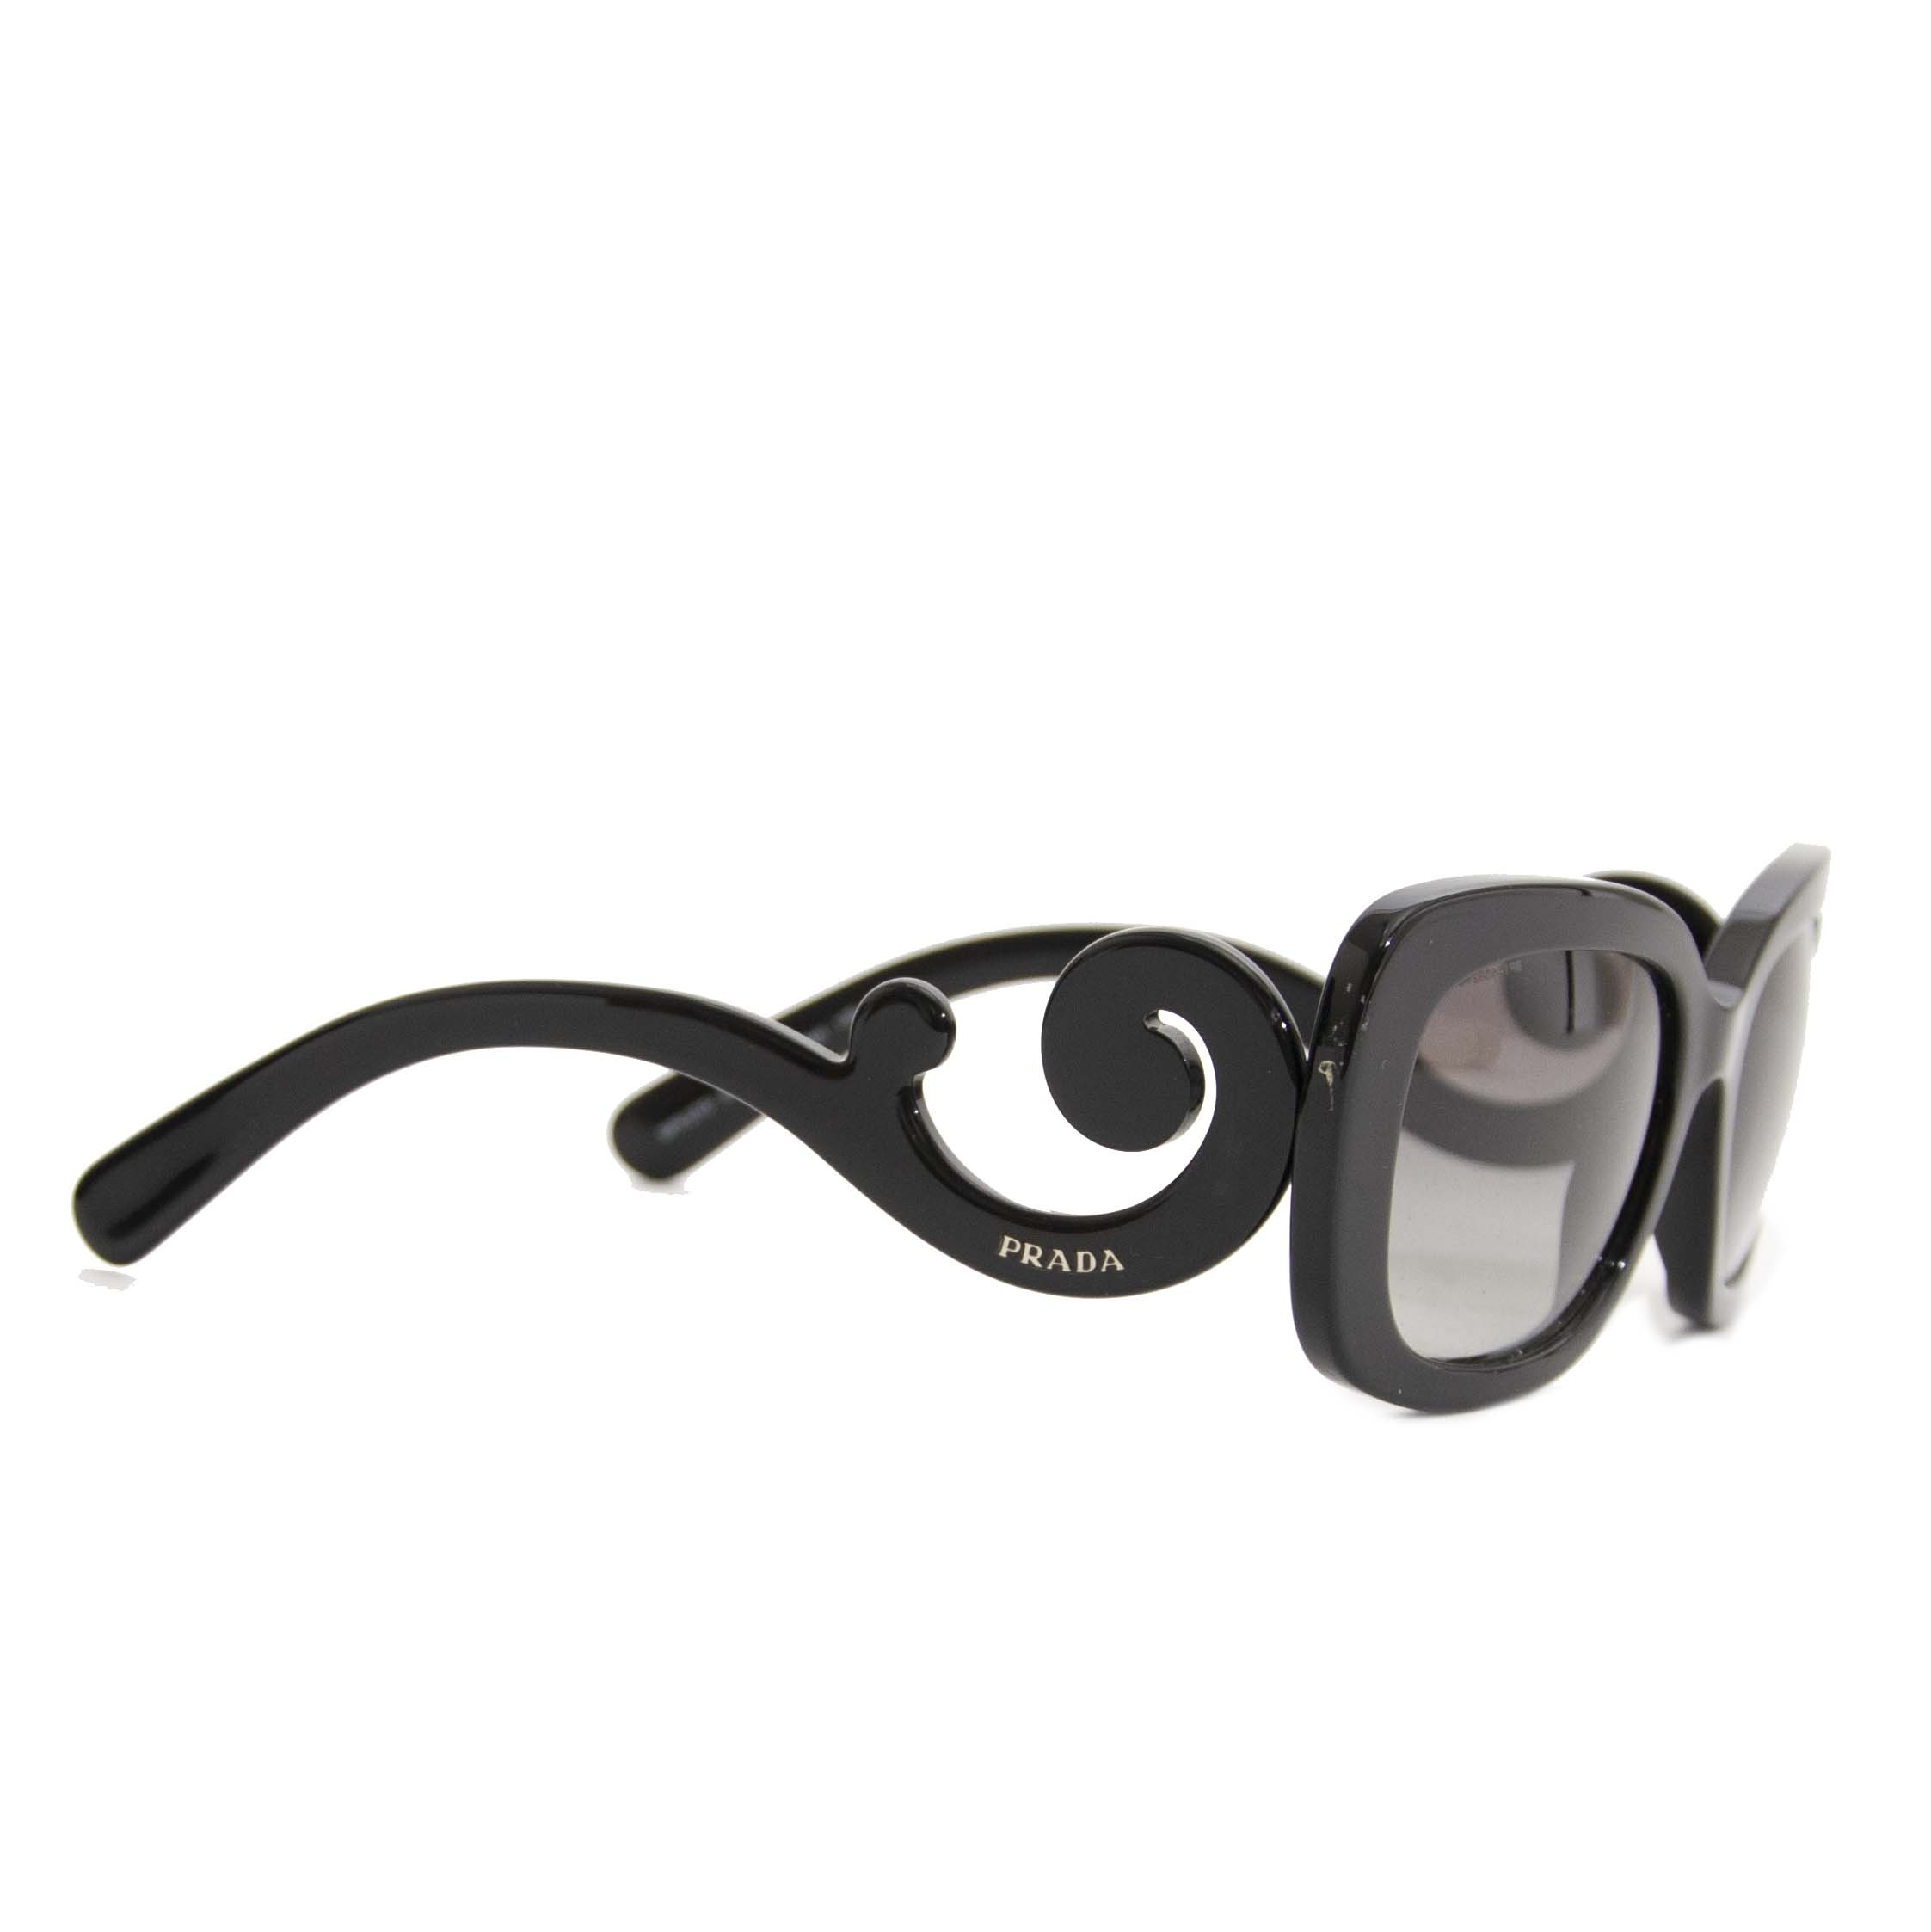 aa94cfafe137 ... Authentic second hand Prada Minimal Baroque Sunglasses Black buy online  webshop LabelLOV